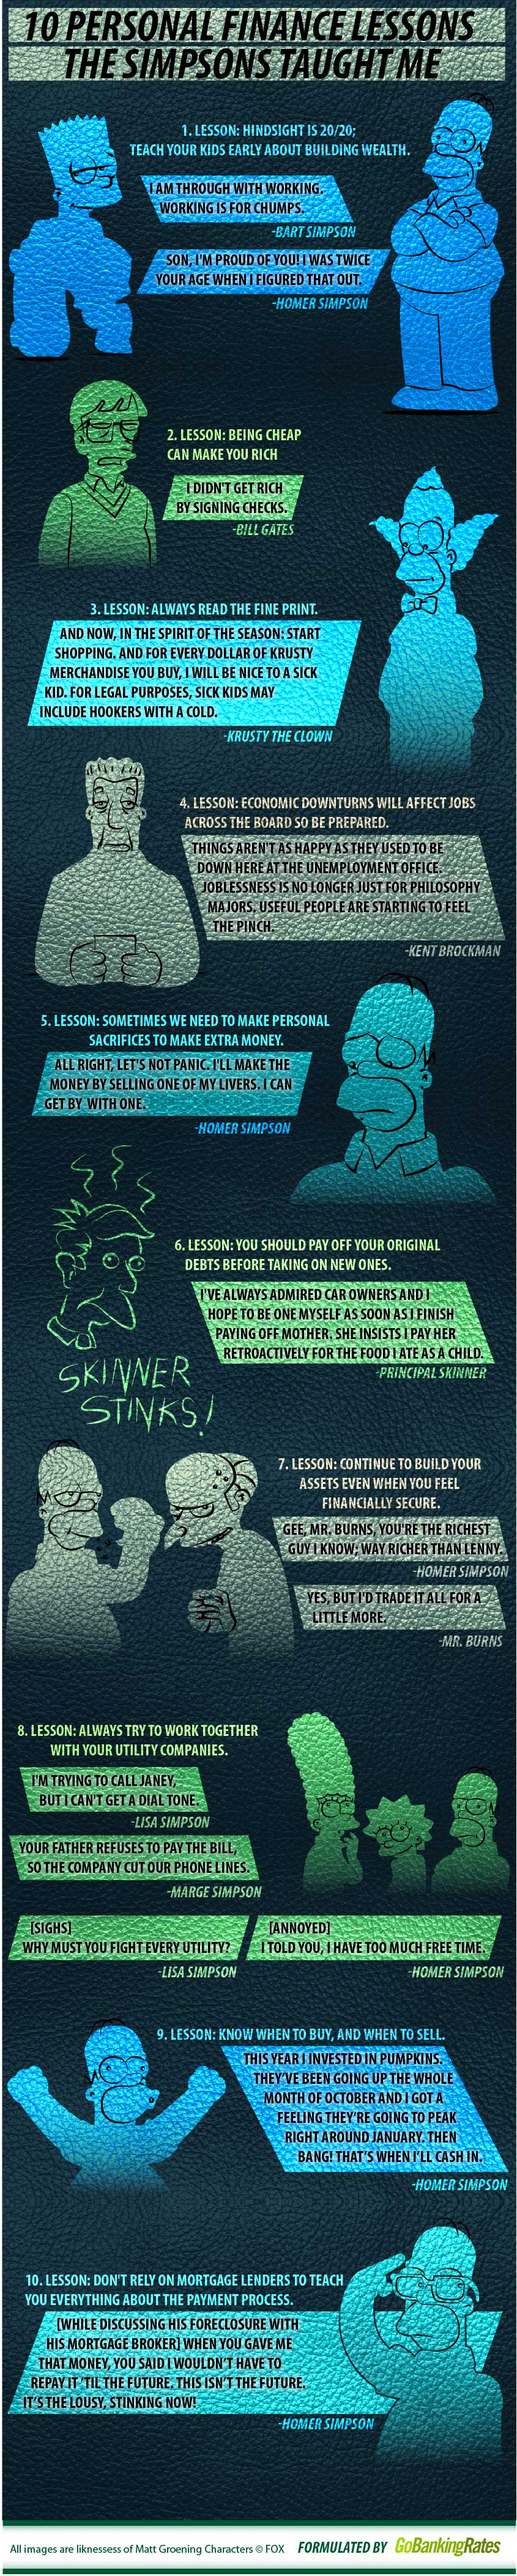 10 Personal Finance Tips From The Simpsons Visual Ly